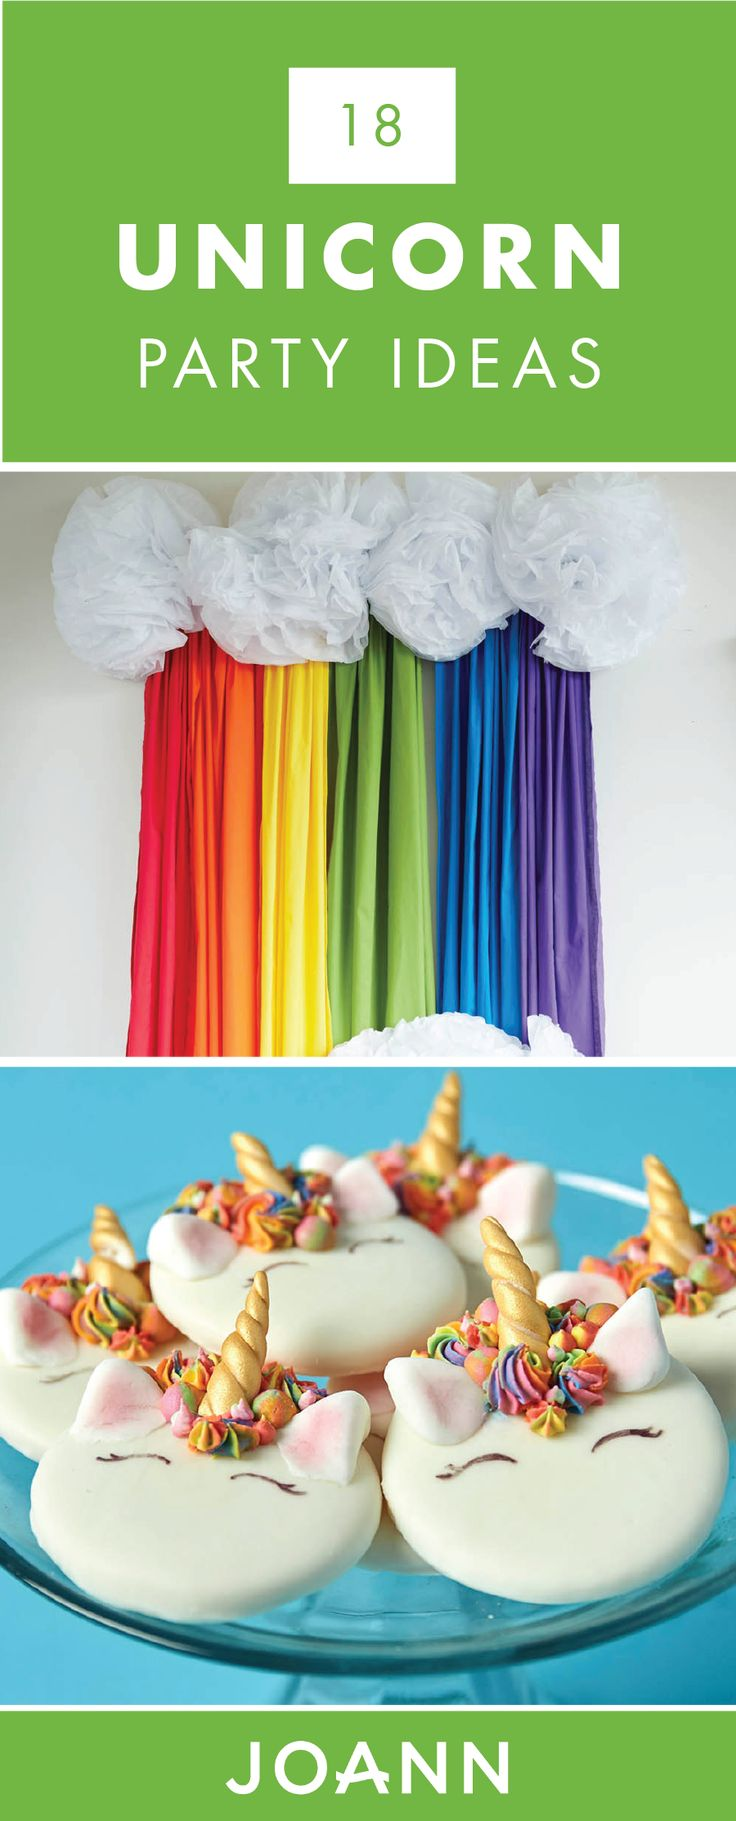 Make your kid's birthday celebration a magical one with the help of these 18 Unicorn Party Ideas from JOANN. From tasty cookies to rainbow decorations, you are sure to find everything you need to make this occasion unforgettable.